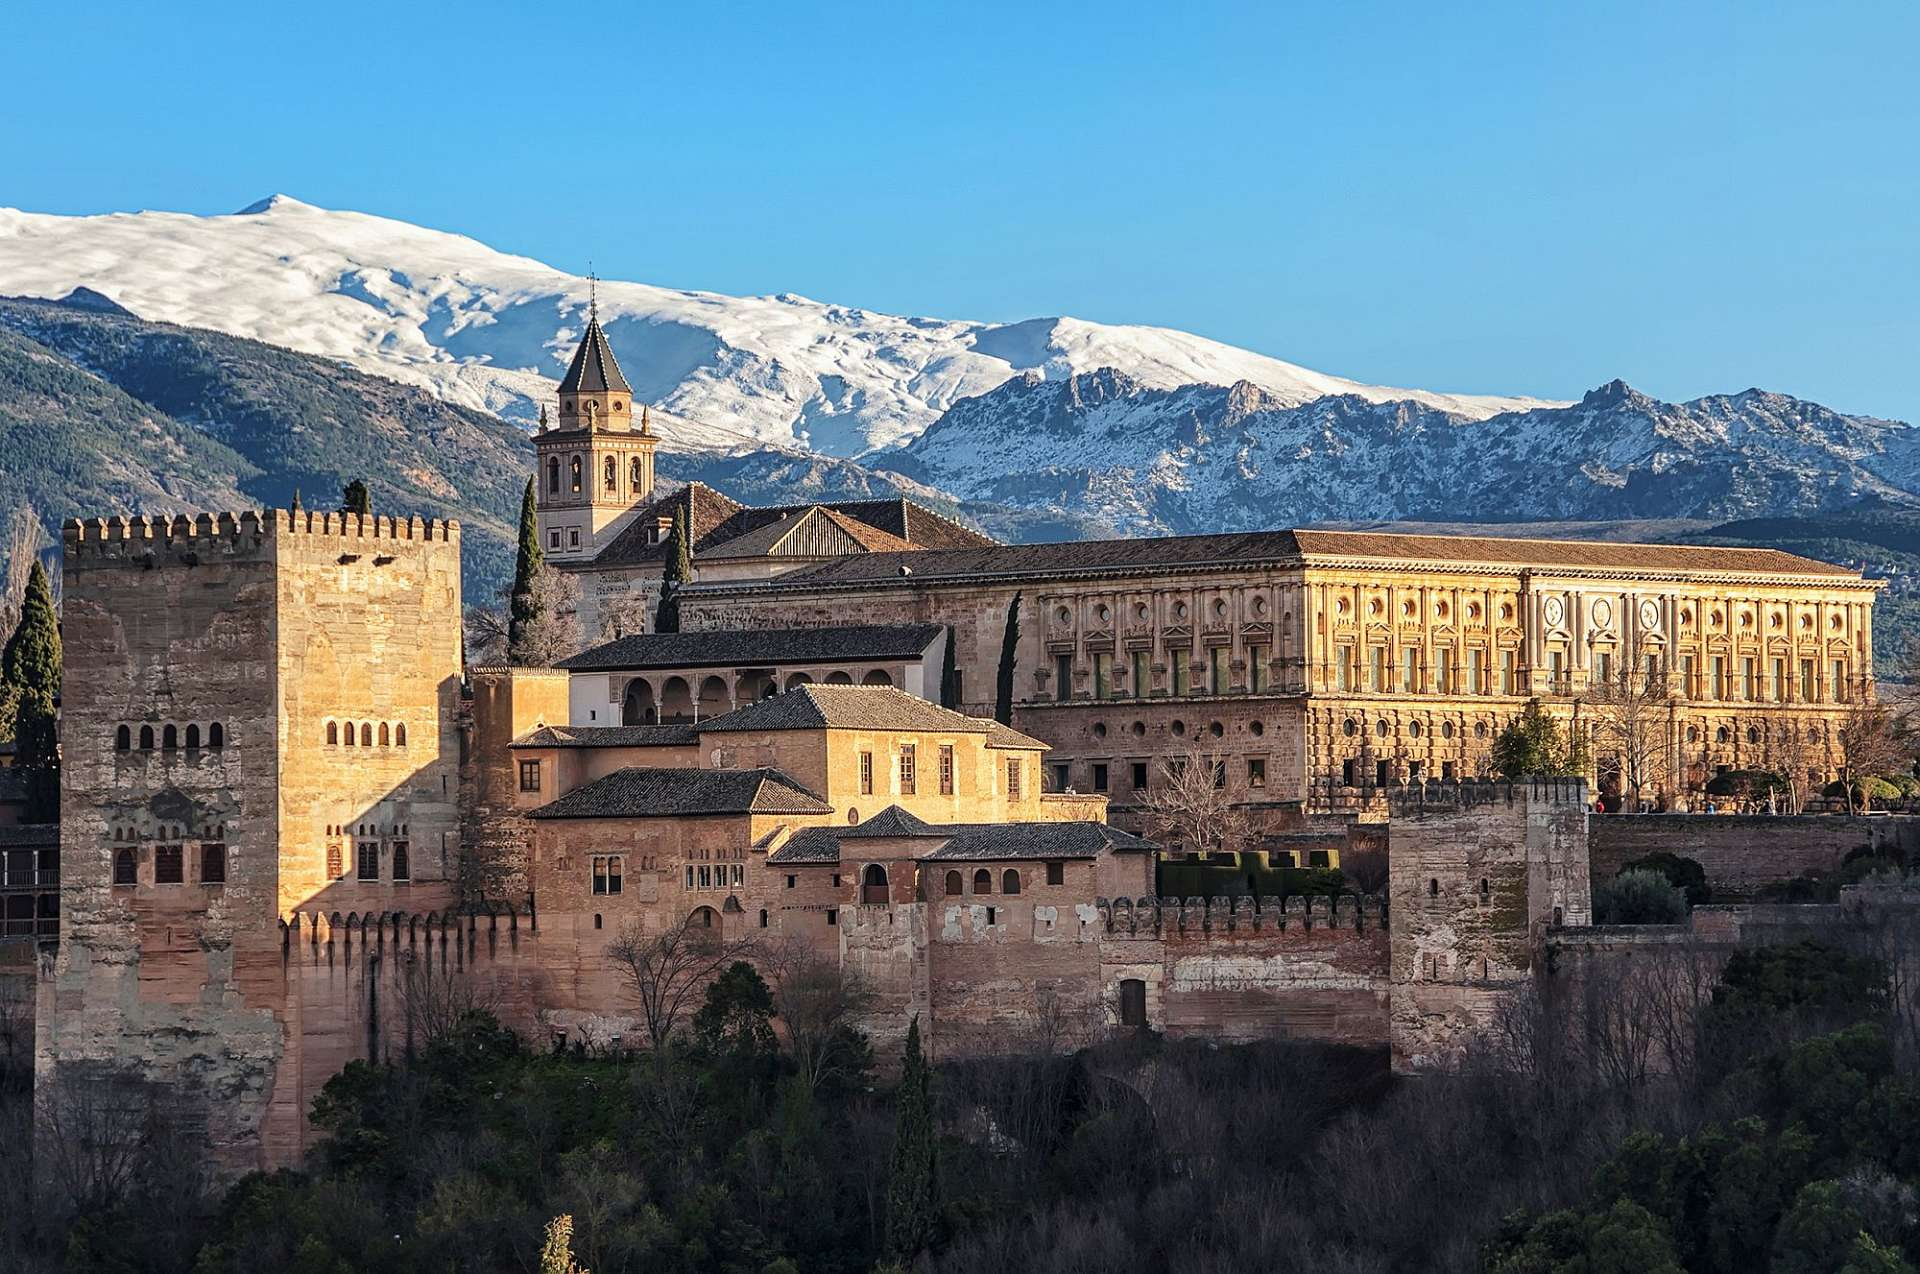 A fairy tale palace in a dreamlike setting: Alhambra